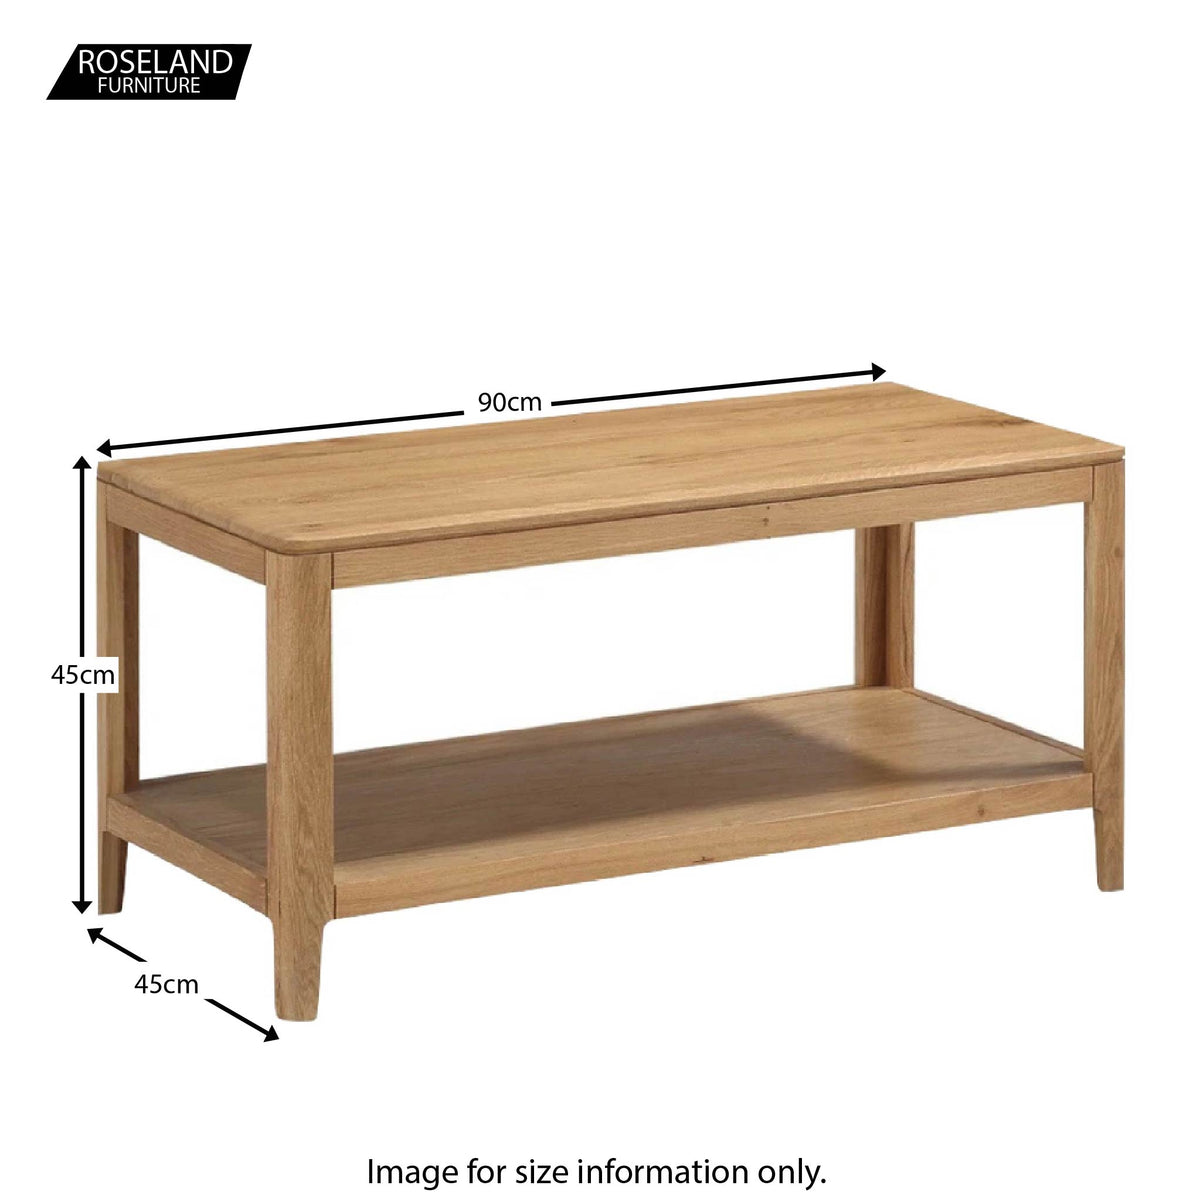 Dunmore Oak Coffee Table - Size Guide